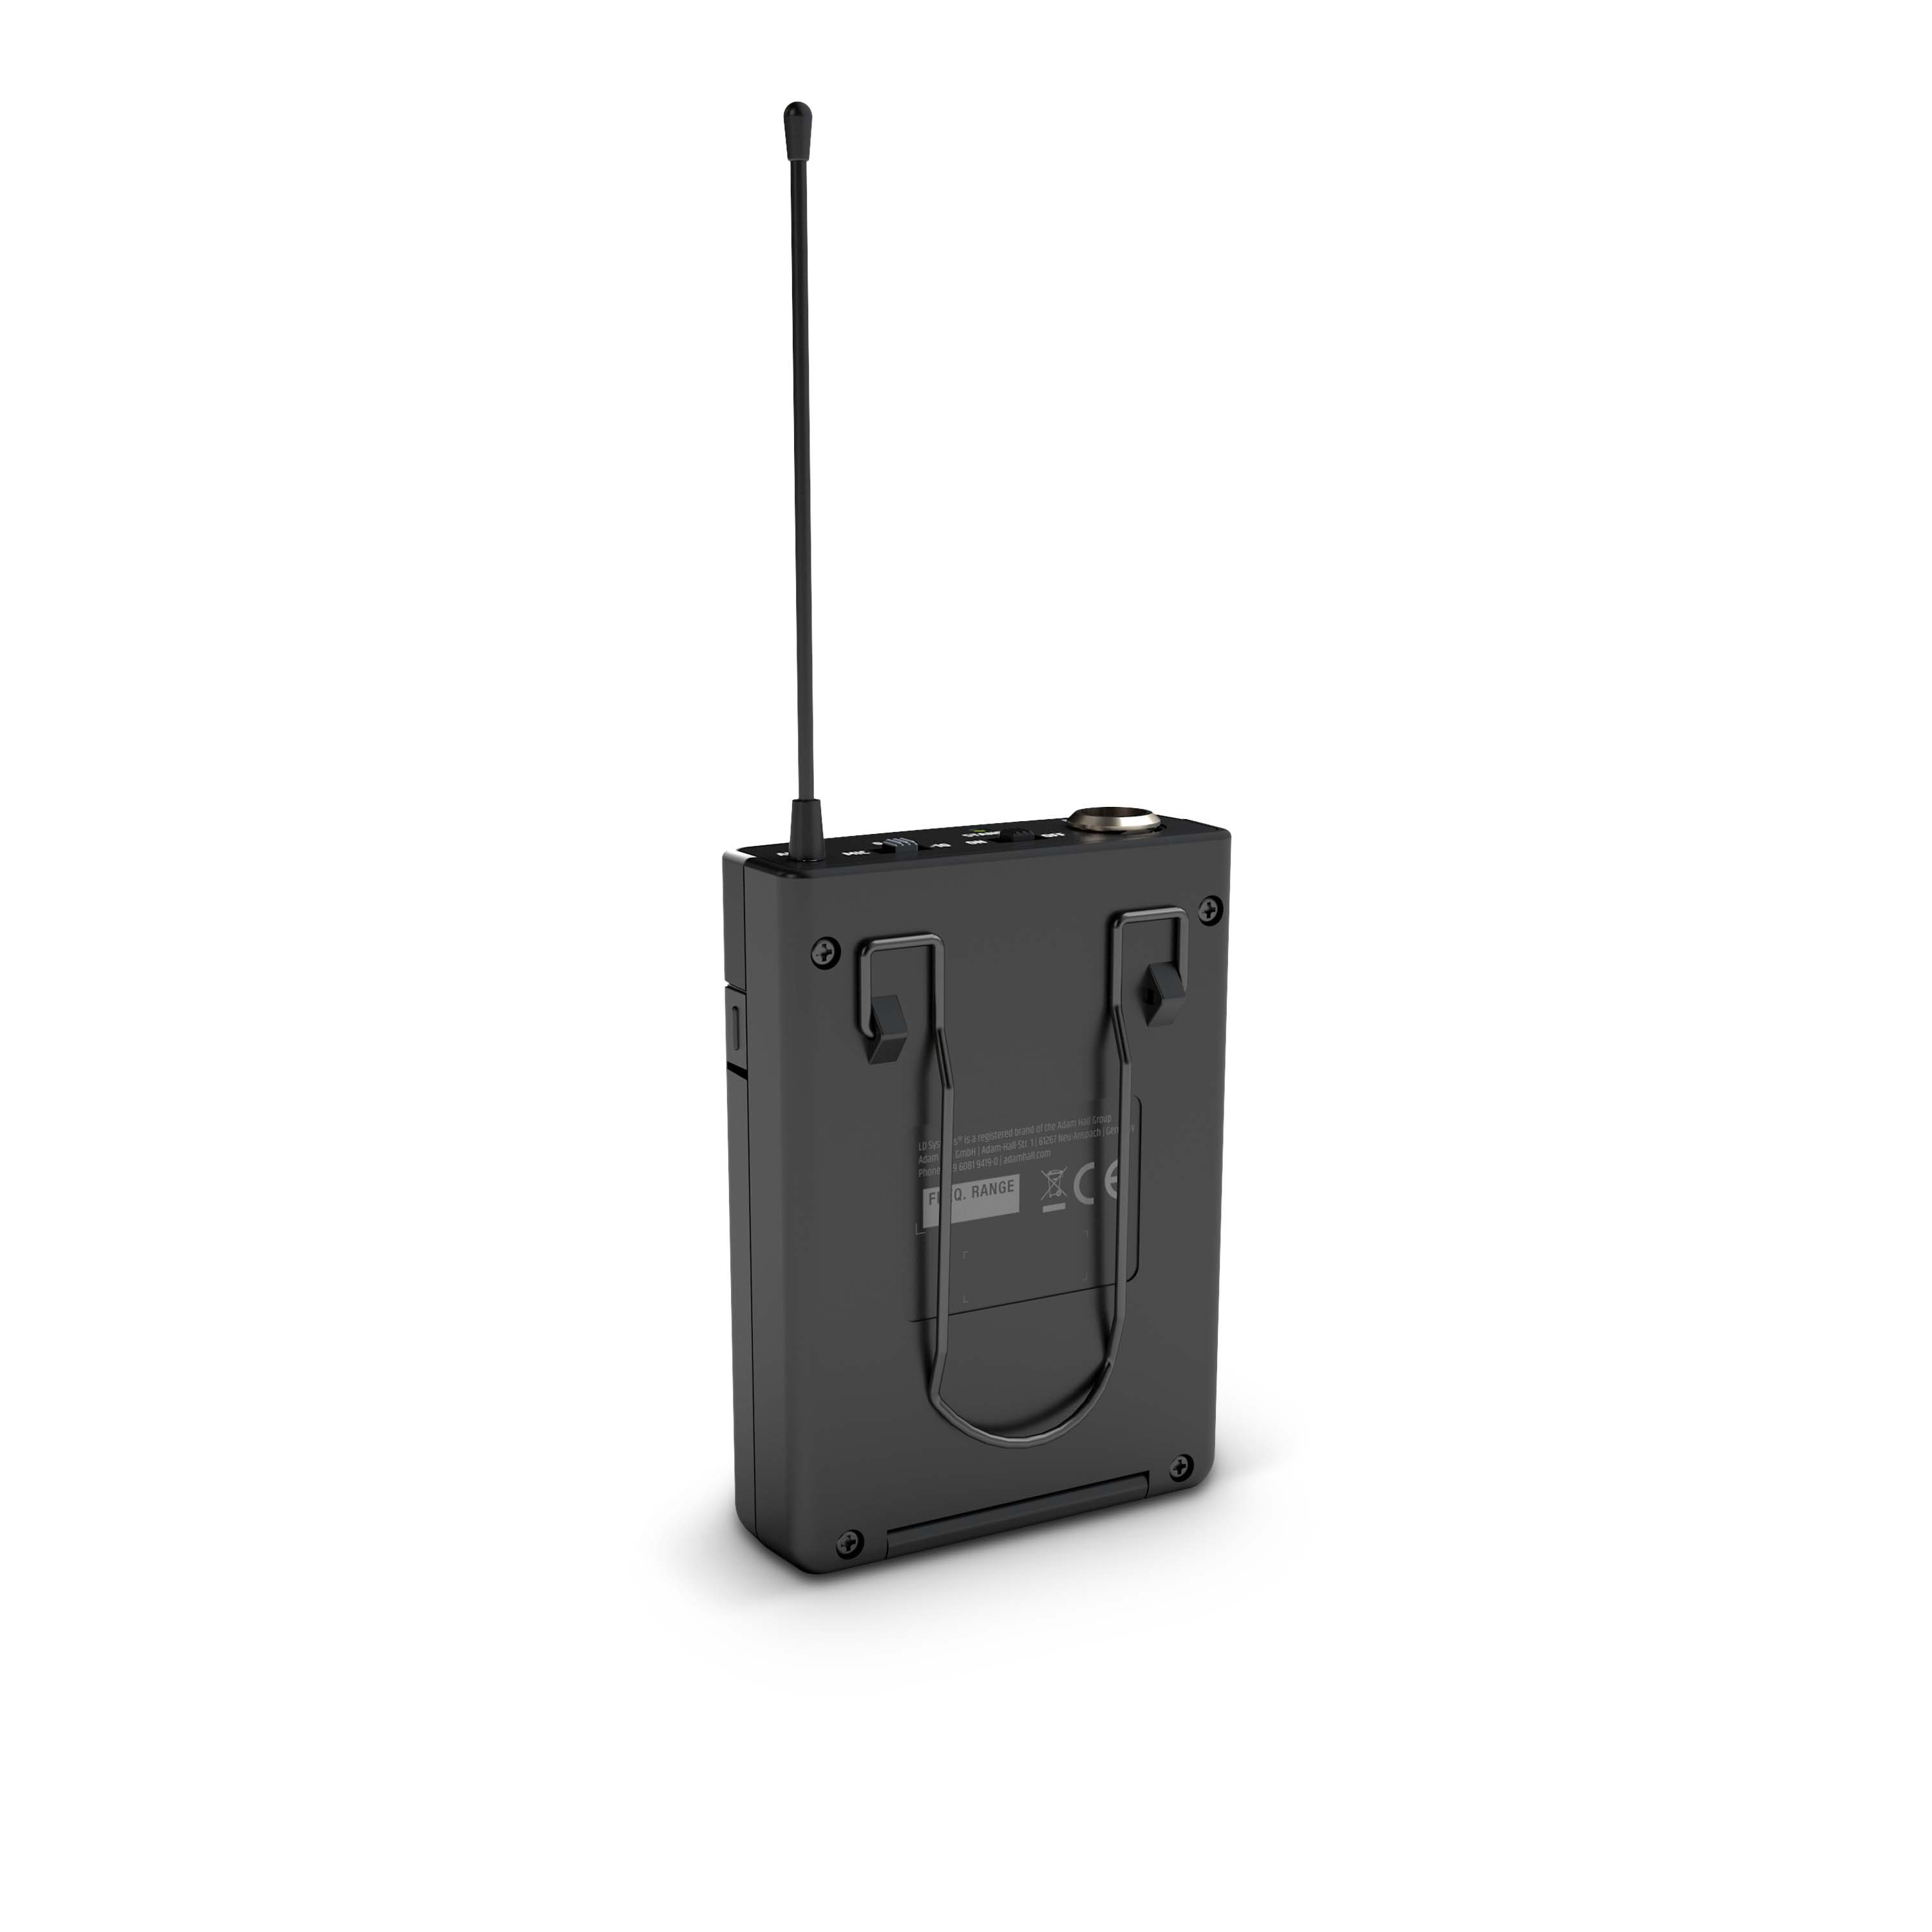 U305.1 BP Body Pack transmitter